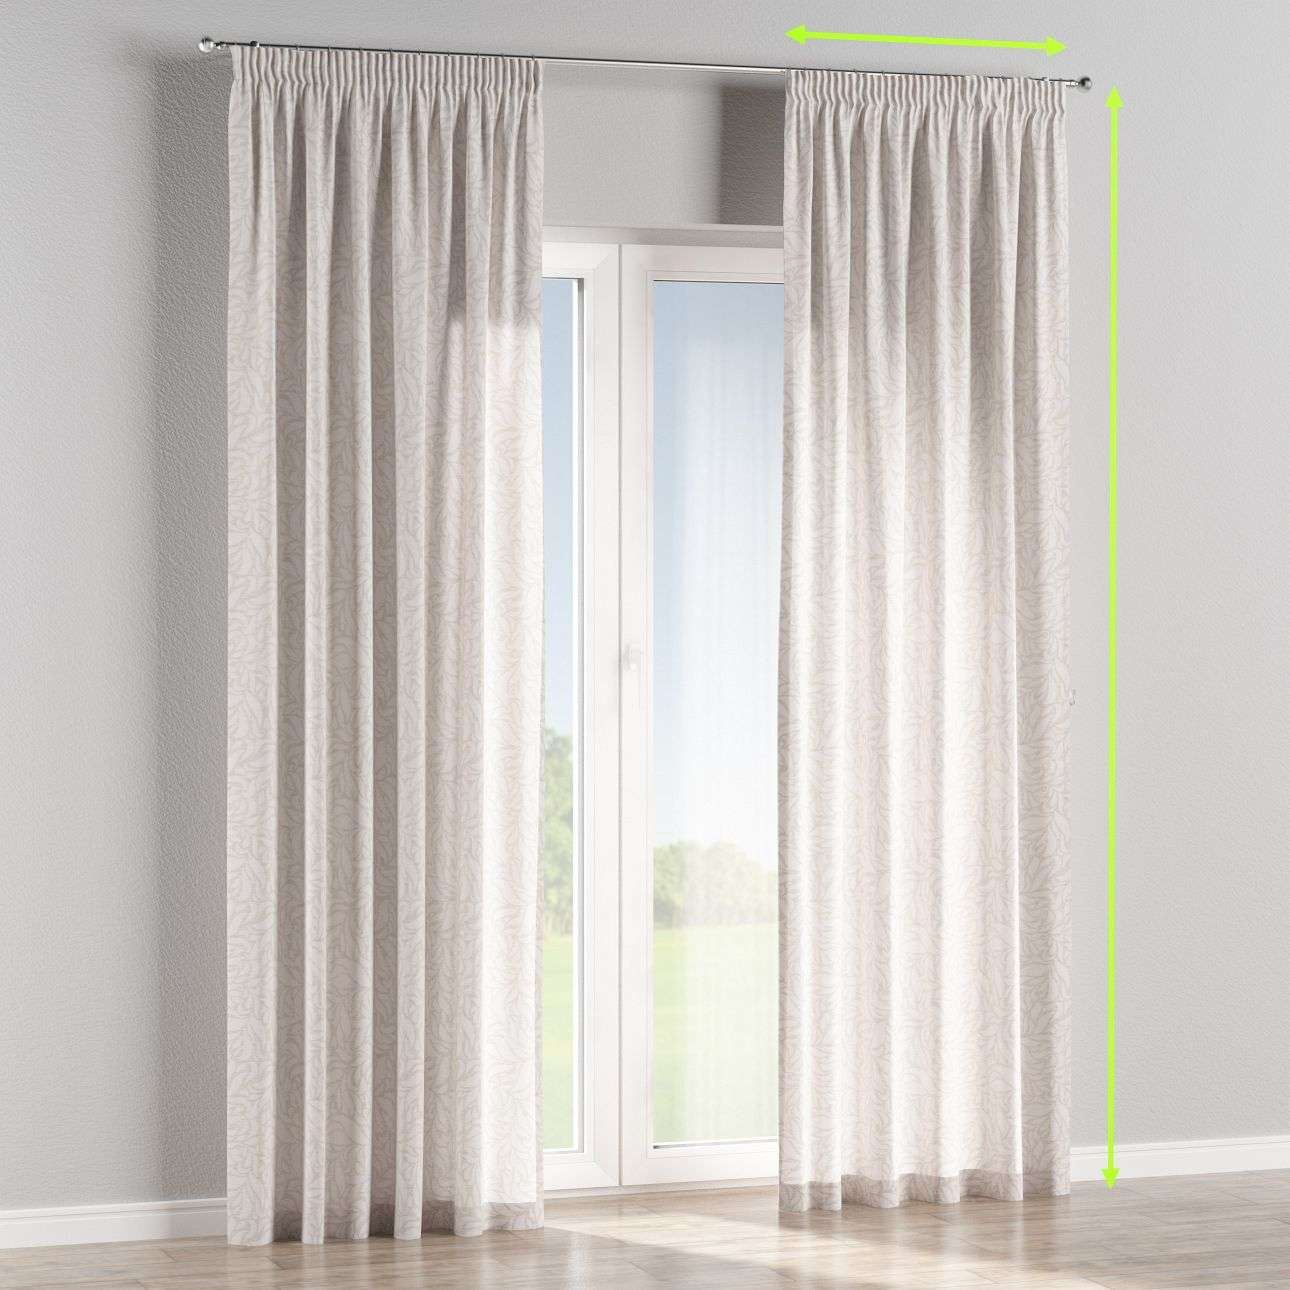 Pencil pleat lined curtains in collection Venice, fabric: 140-50